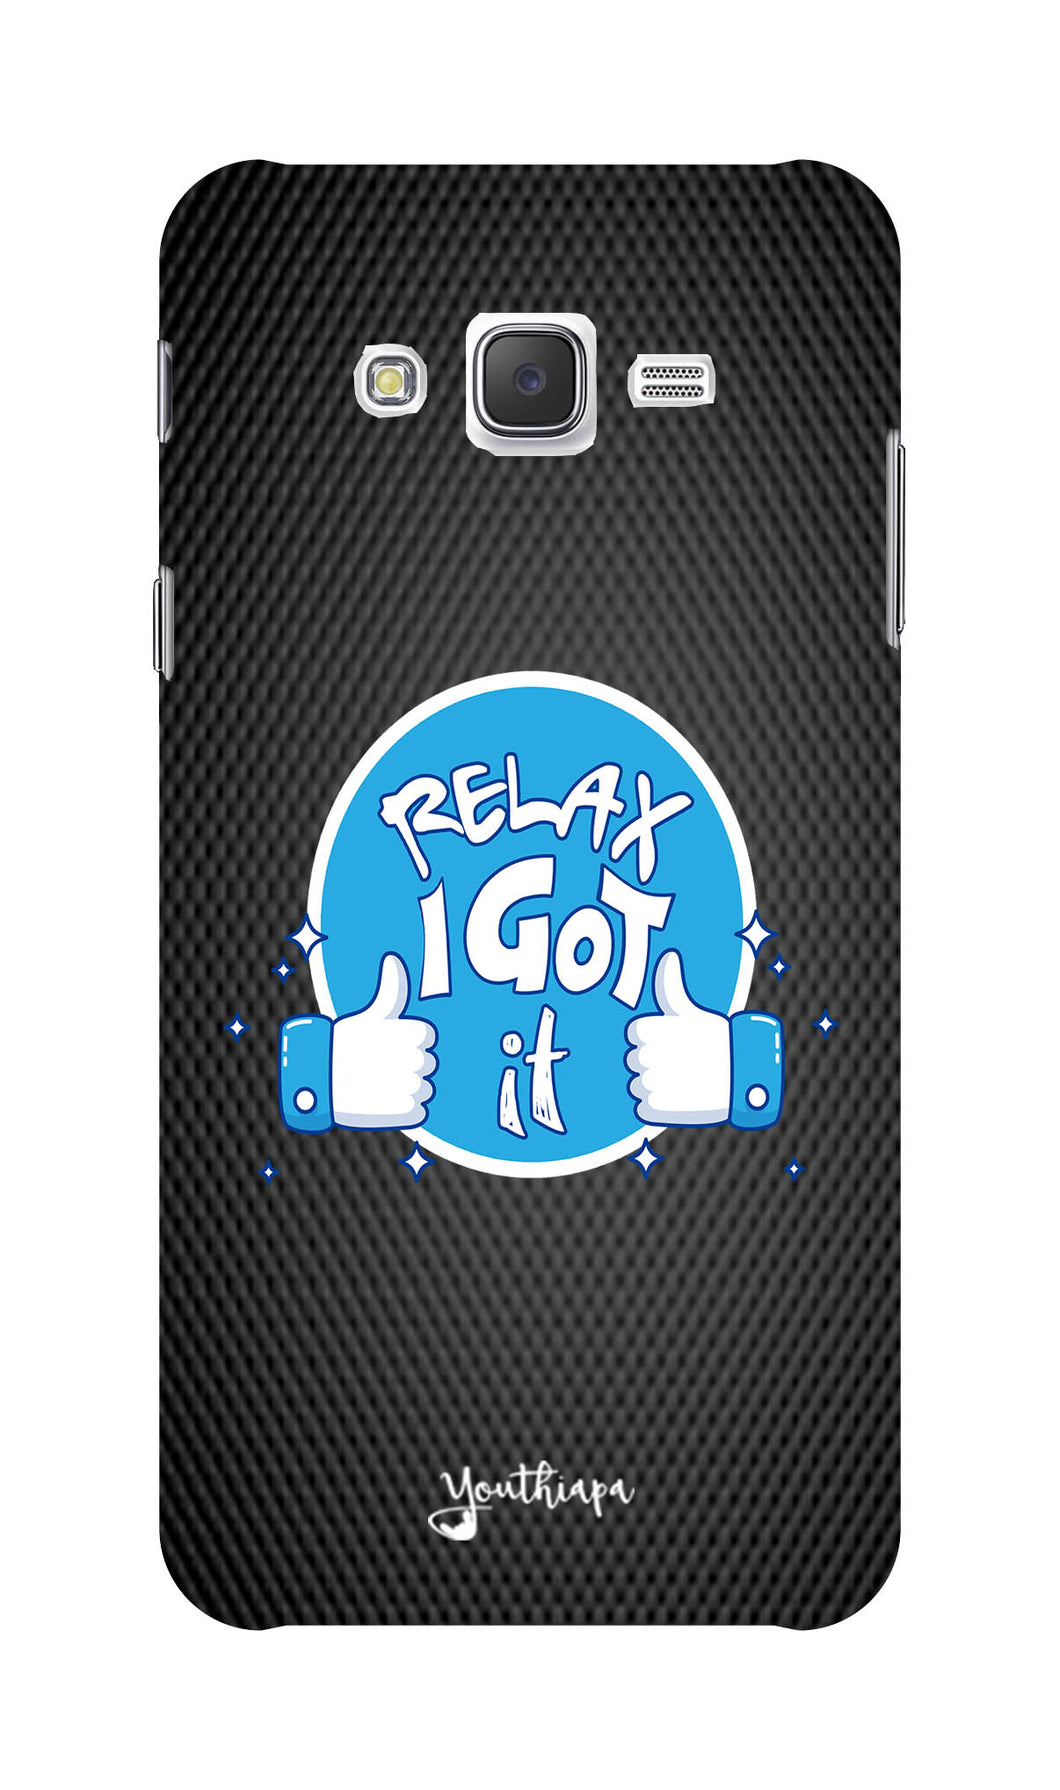 Relax Edition for Samsung Galaxy J5